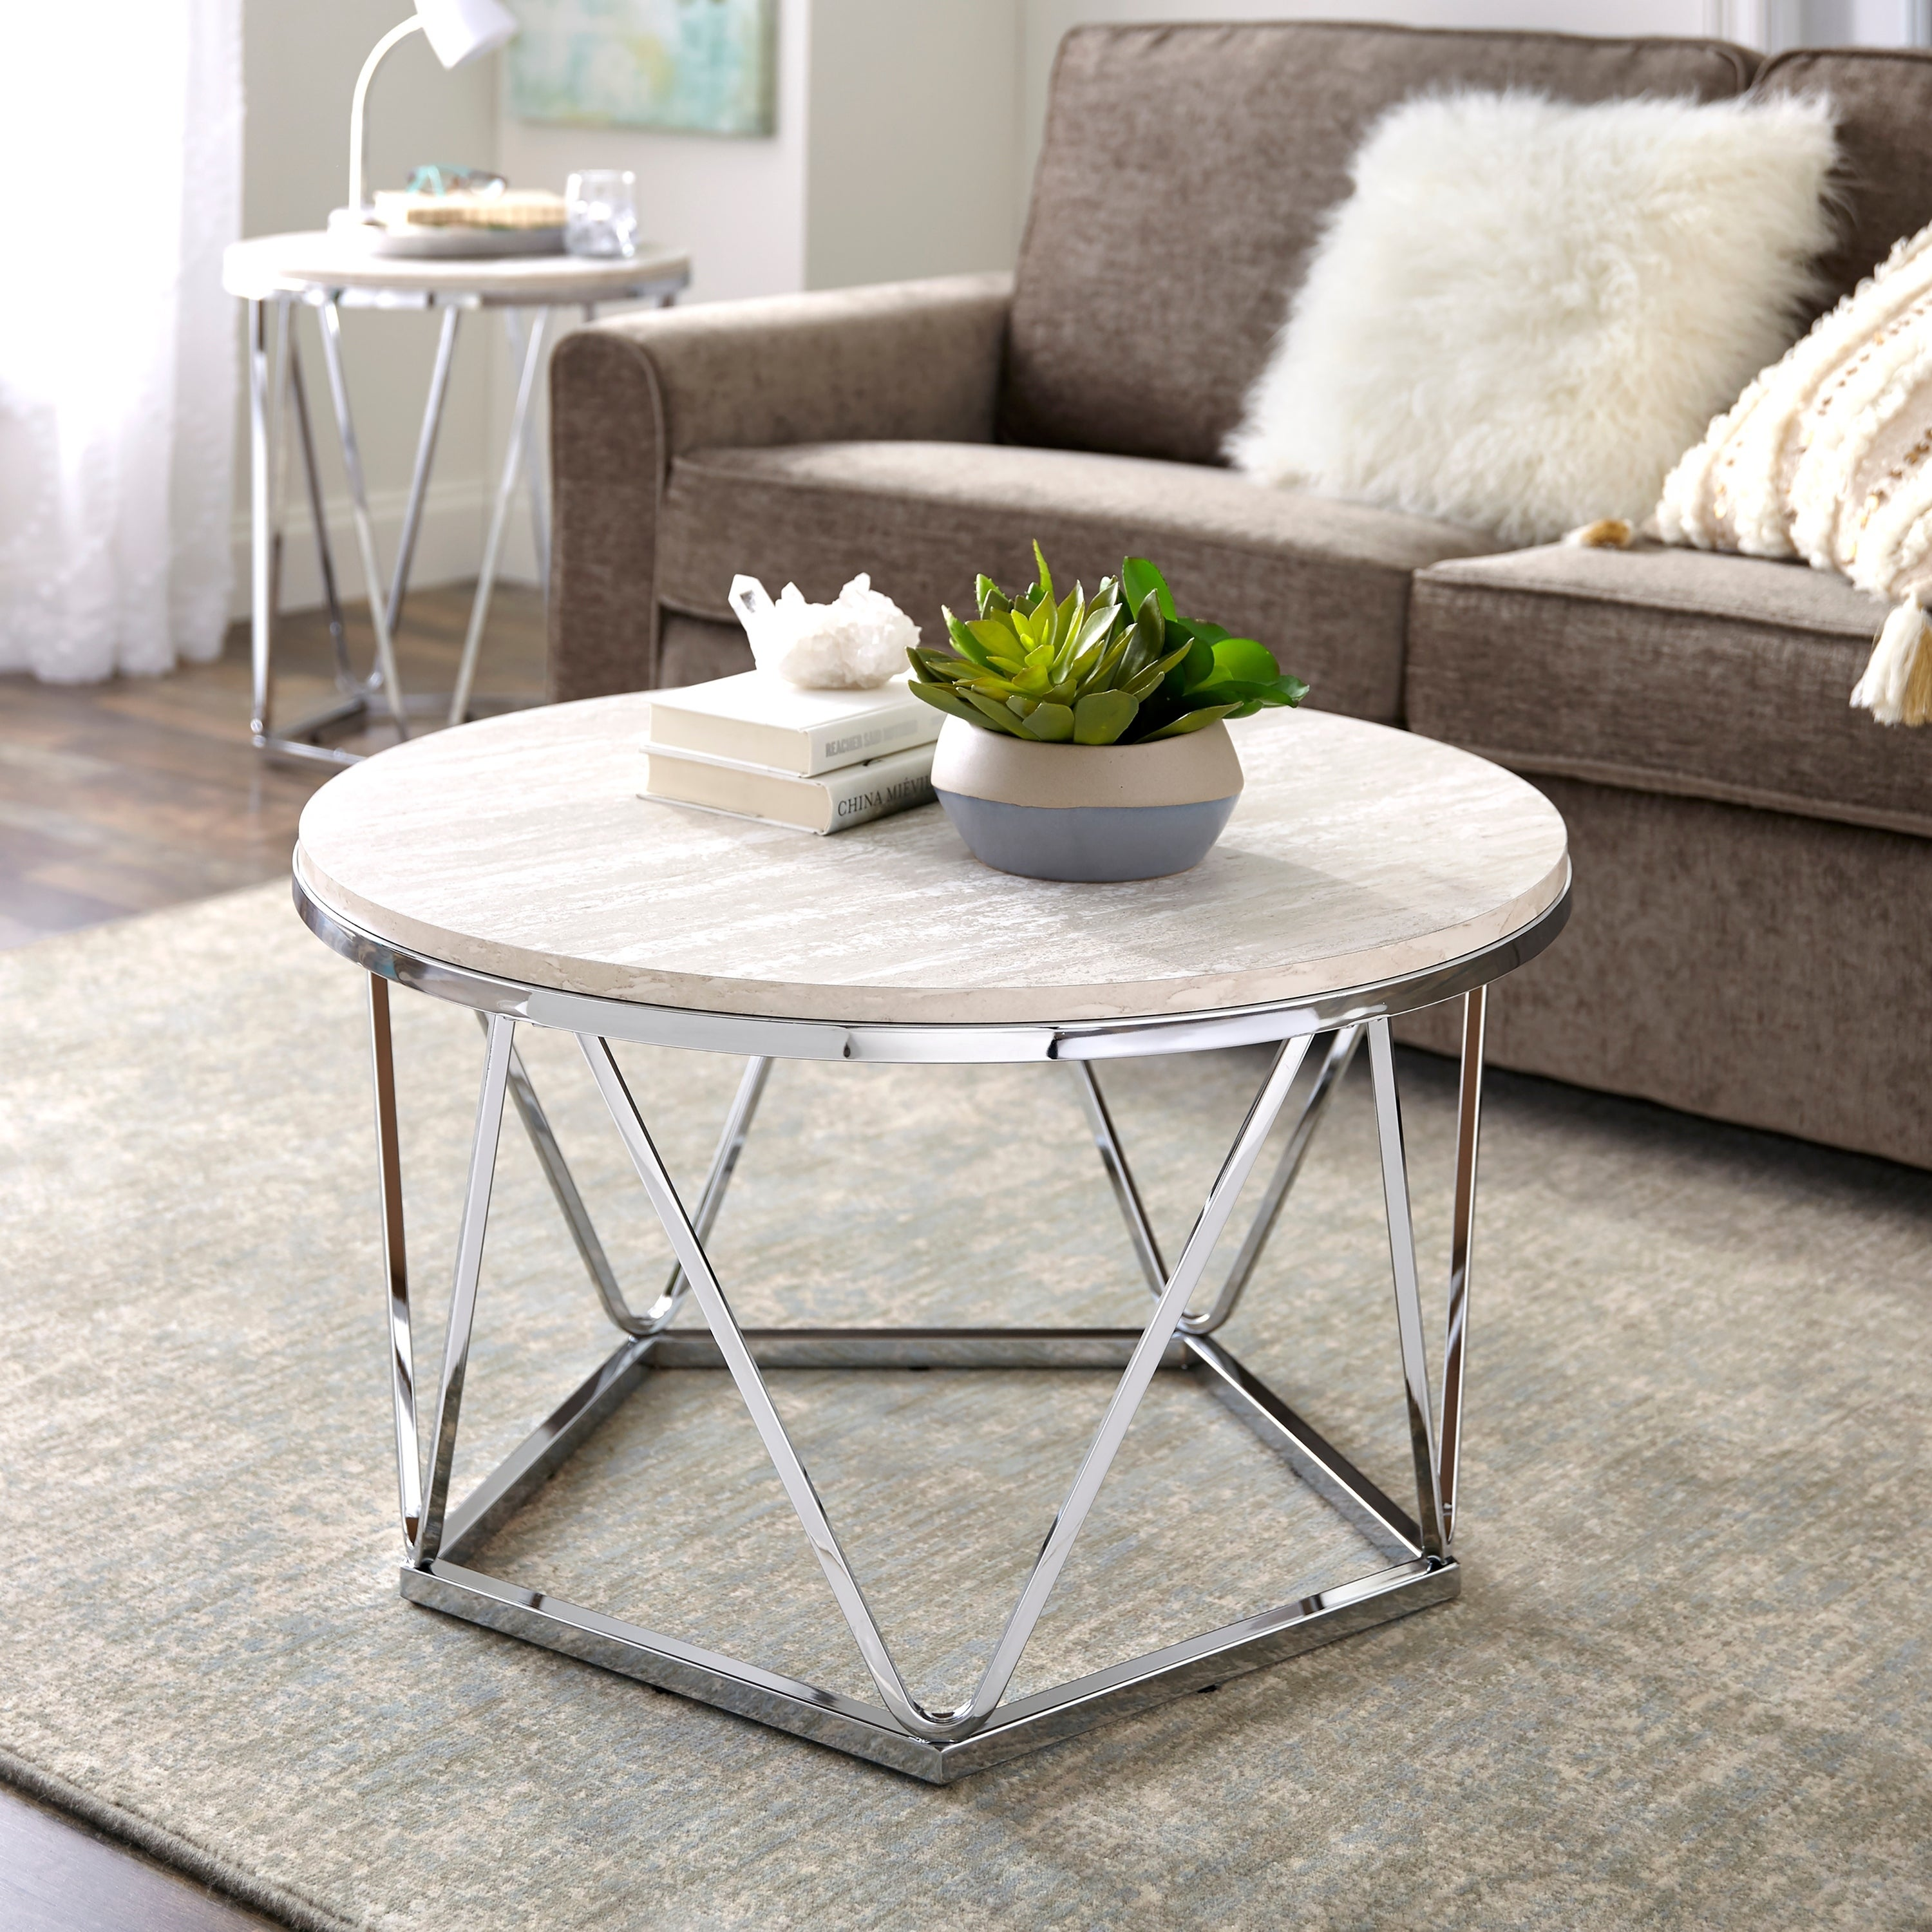 Harper Blvd Lola Faux Stone Round Coffee Table Free Shipping Today 24142955